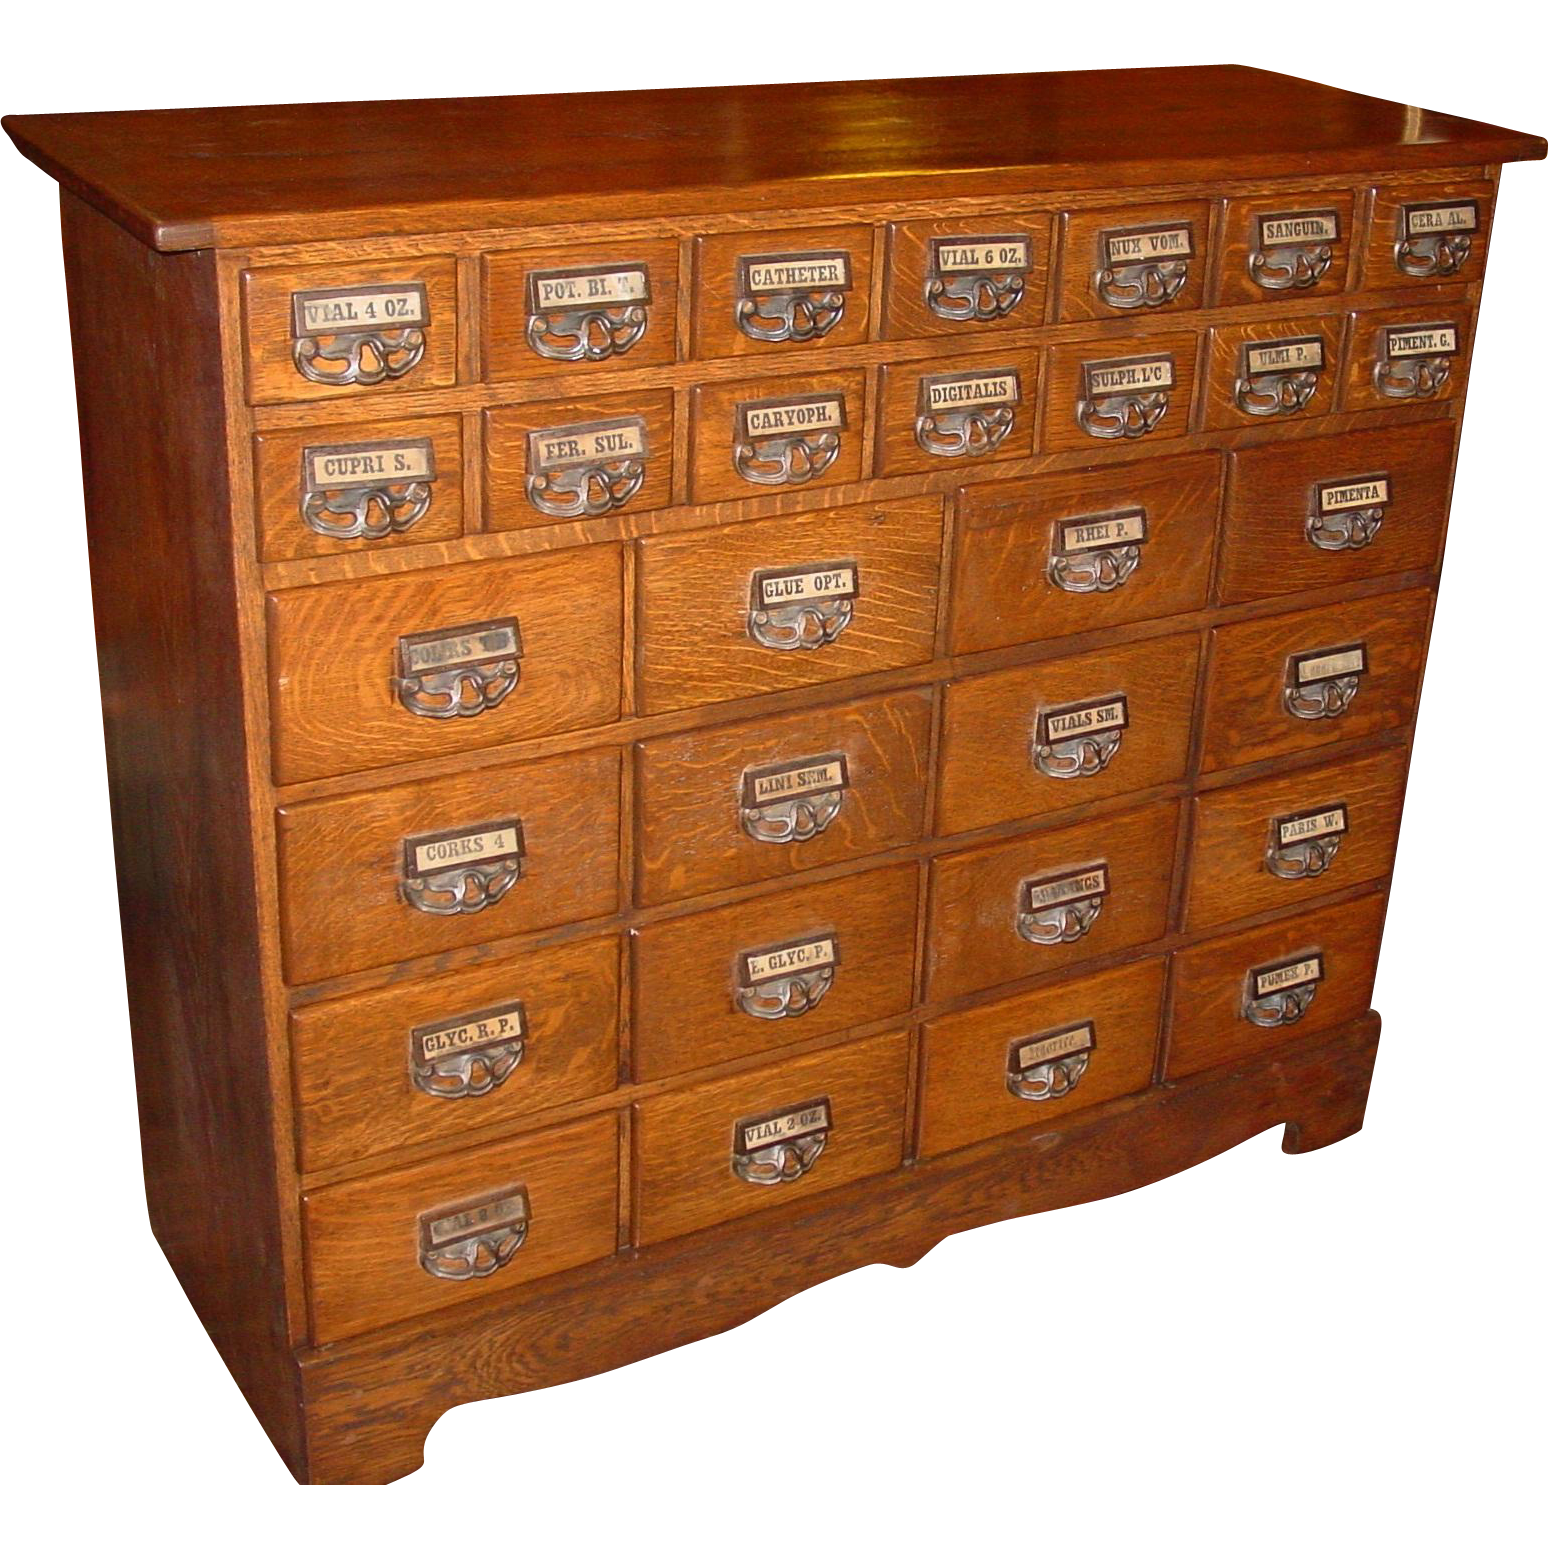 30 drawer quarter sawn oak Apothecary cabinet with original labels